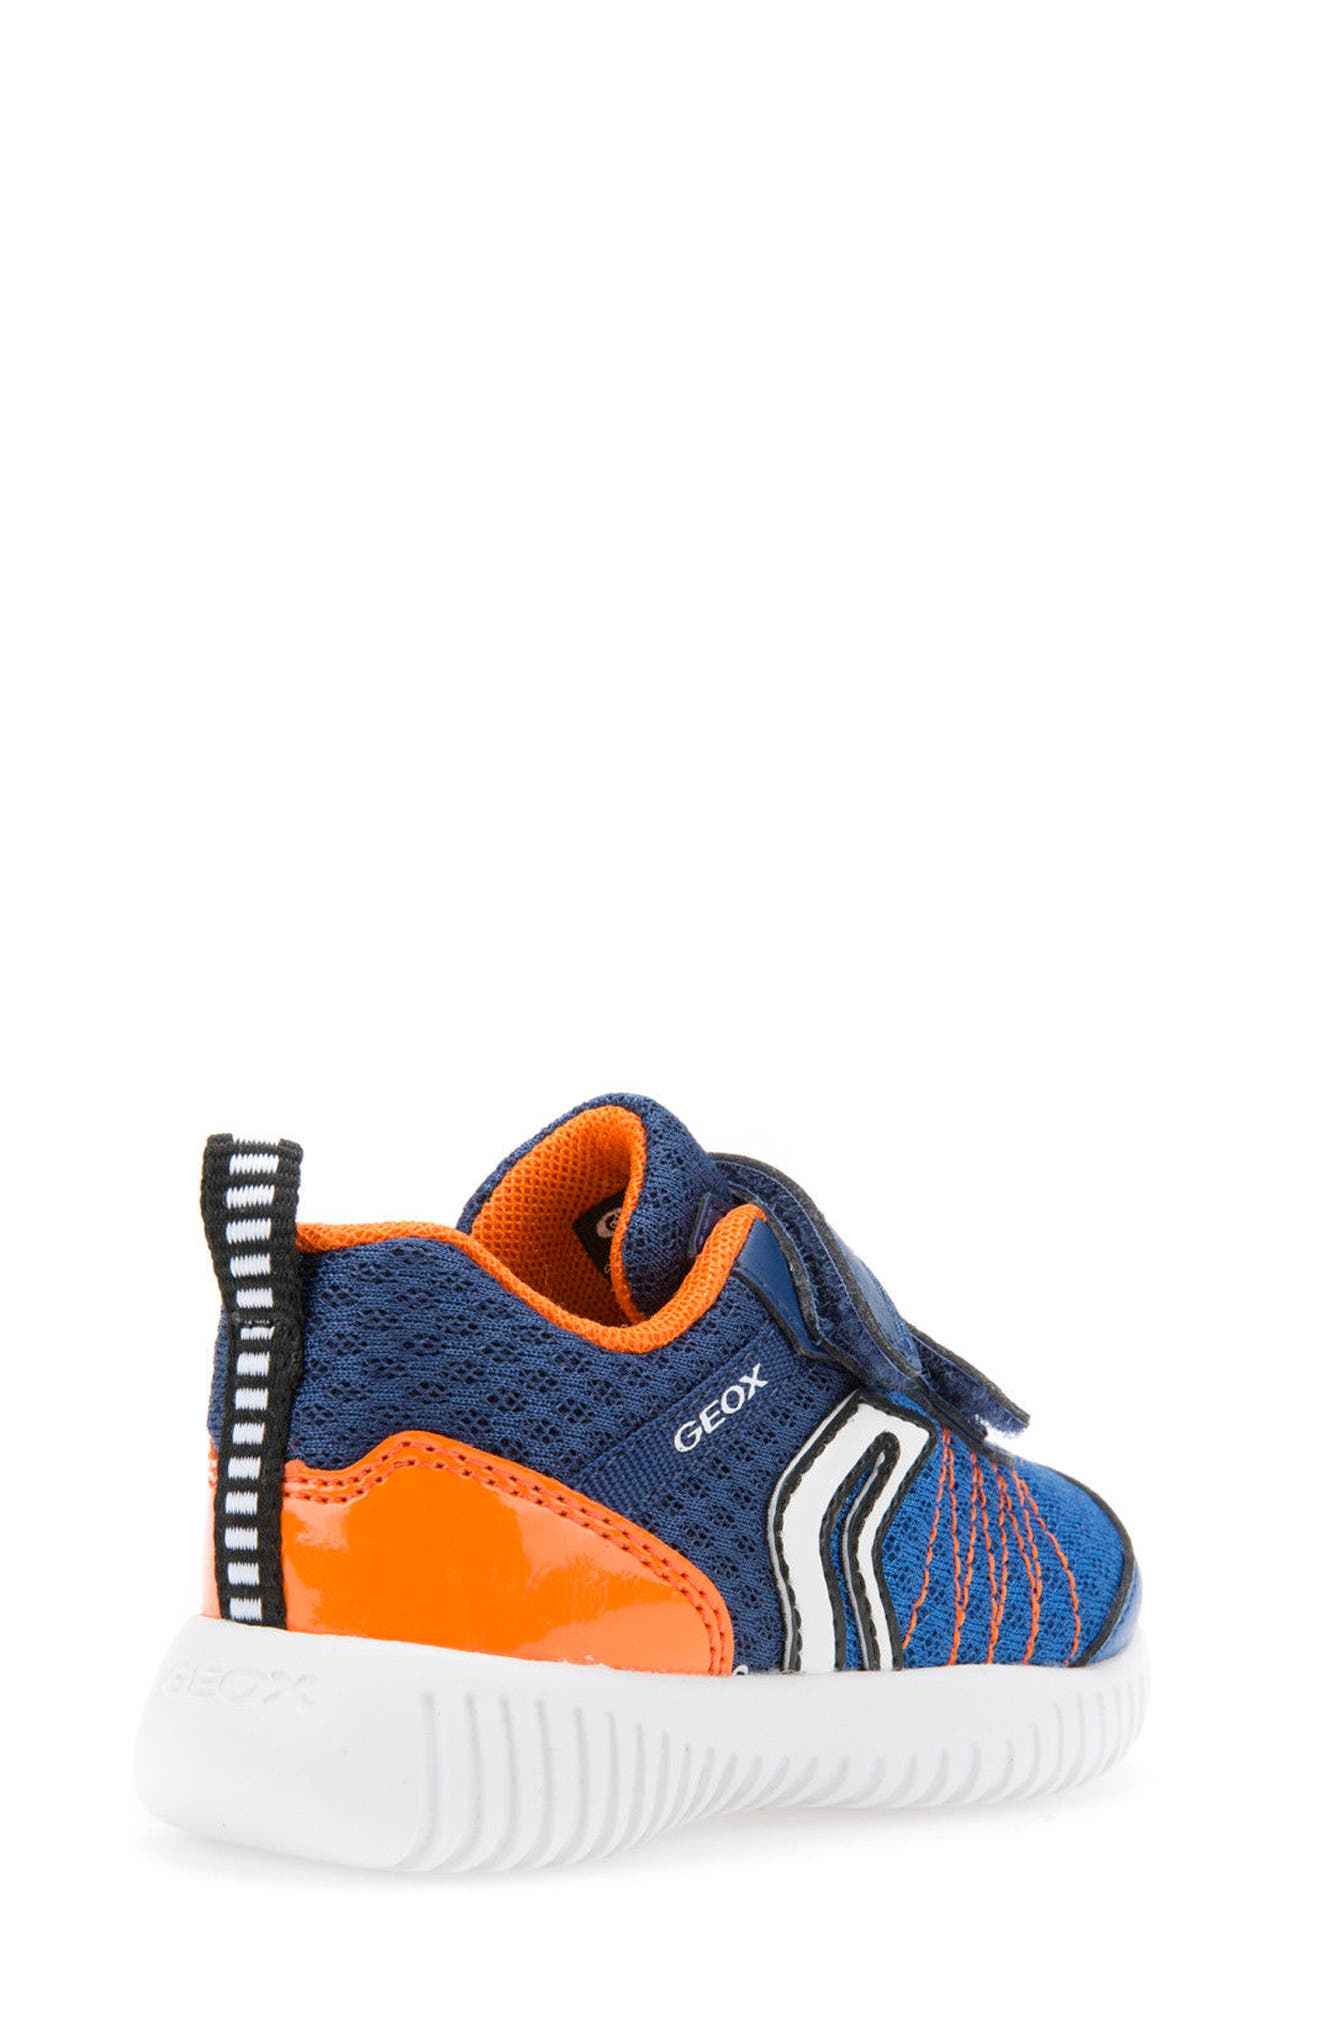 Waviness Waterproof Sneaker,                             Alternate thumbnail 2, color,                             NAVY/ ORANGE